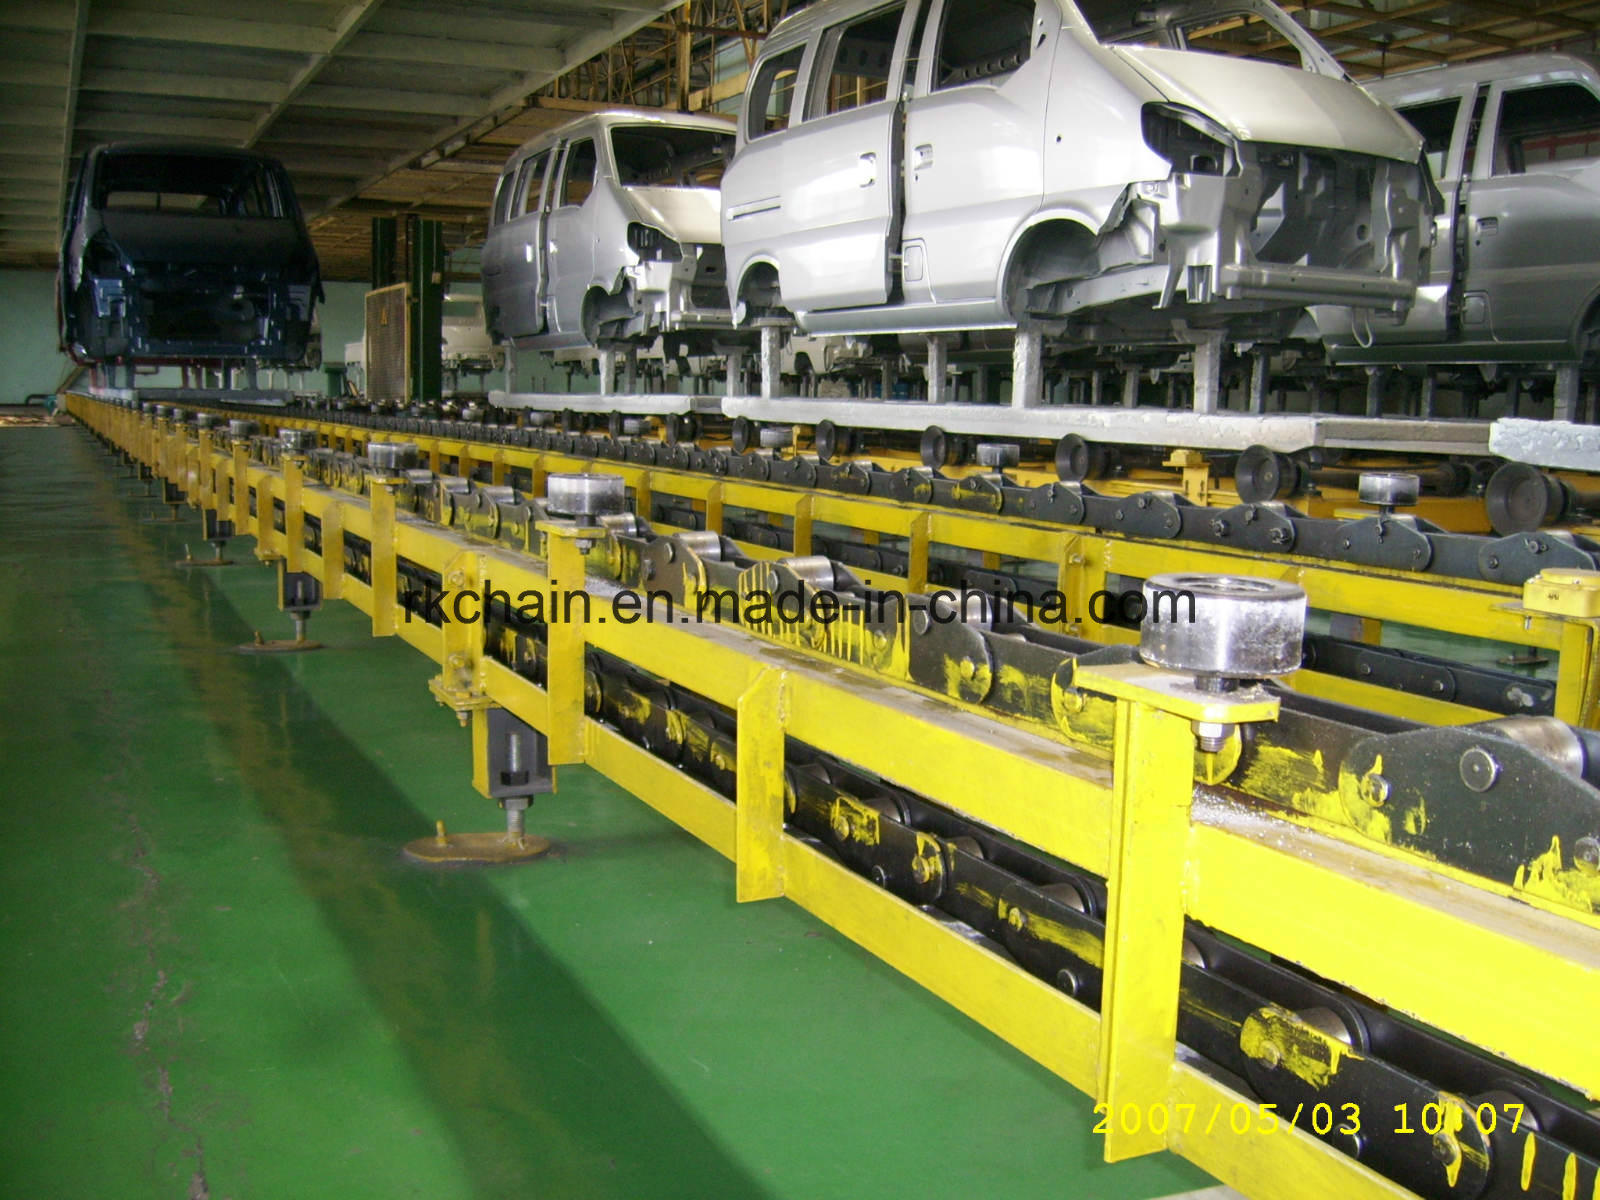 Conveyor Chain of Transmission System for Car Assembly Industries